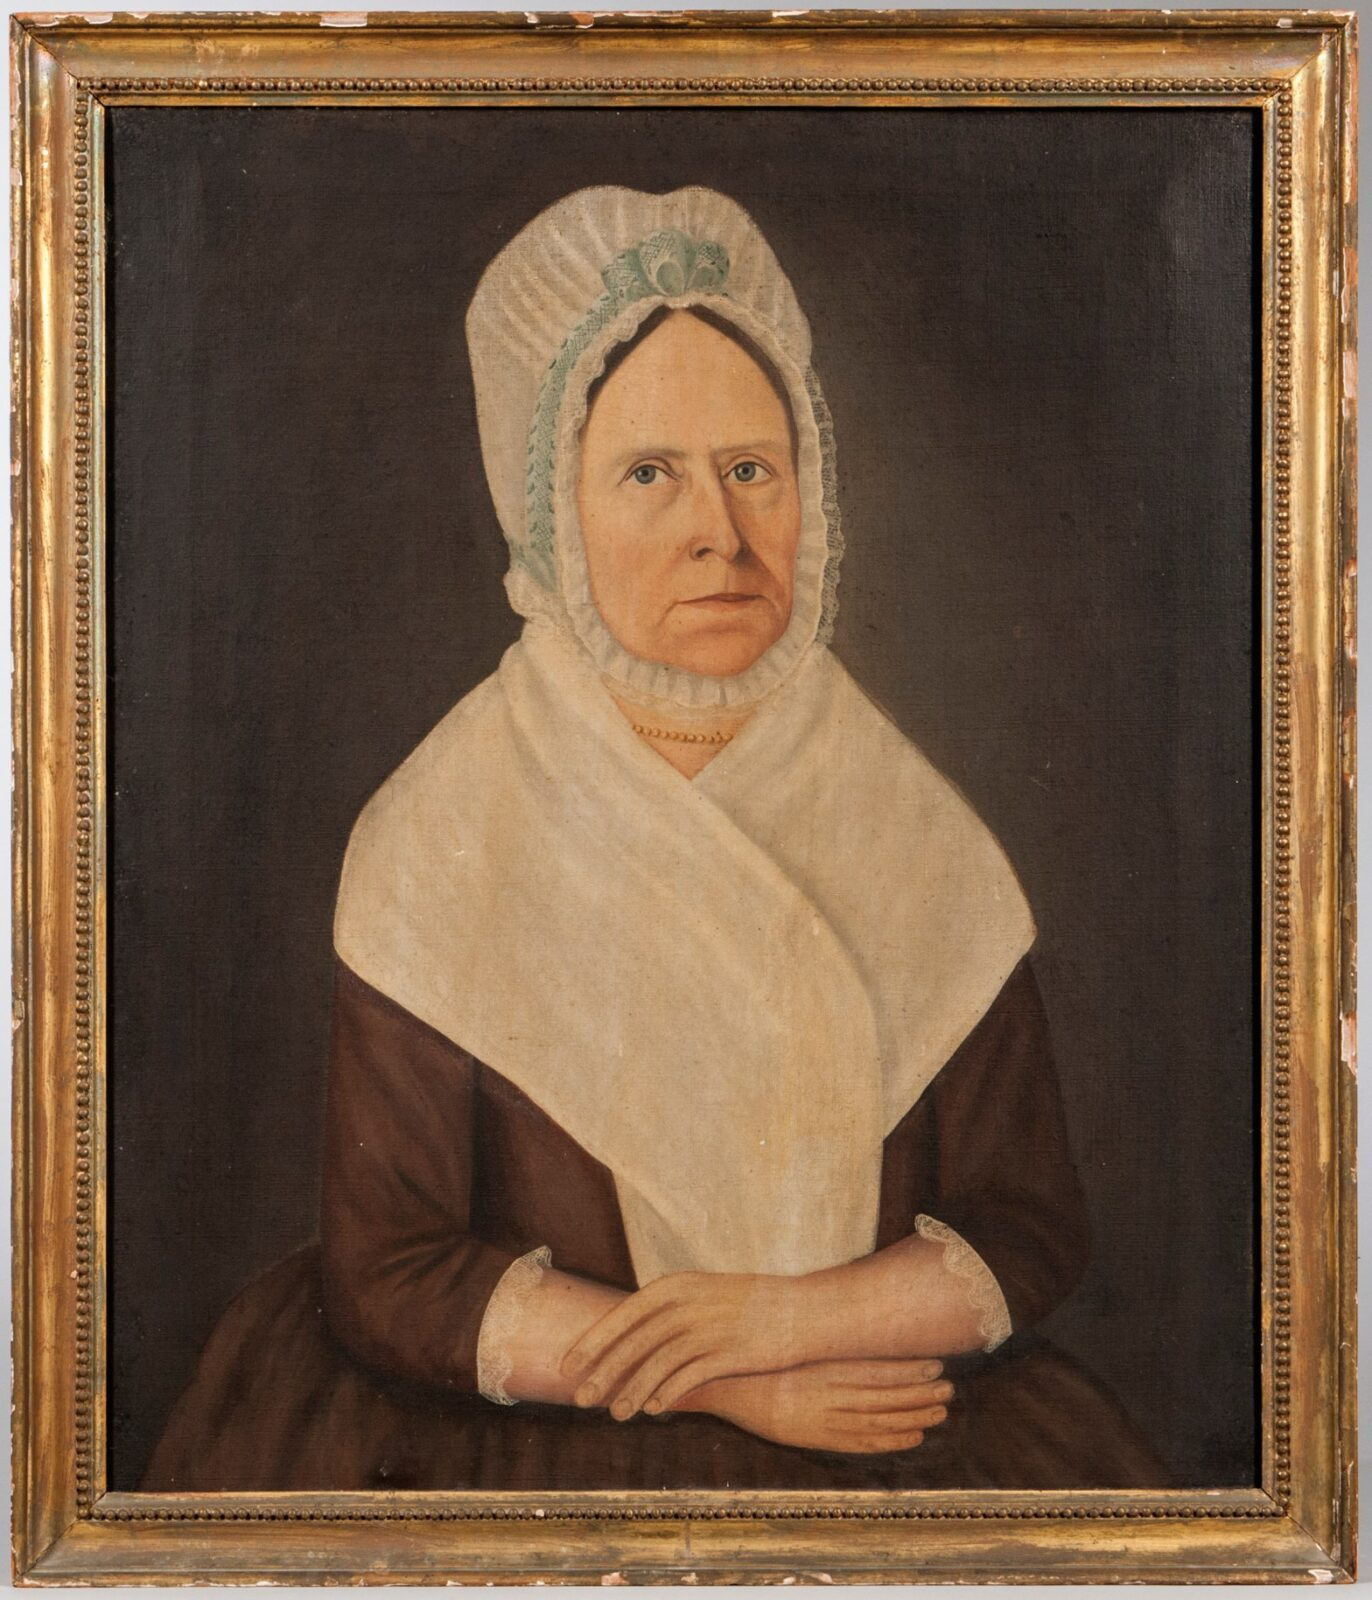 The American Folk Art Museum in New York has received gift of two portraits by John Brewster Jr.